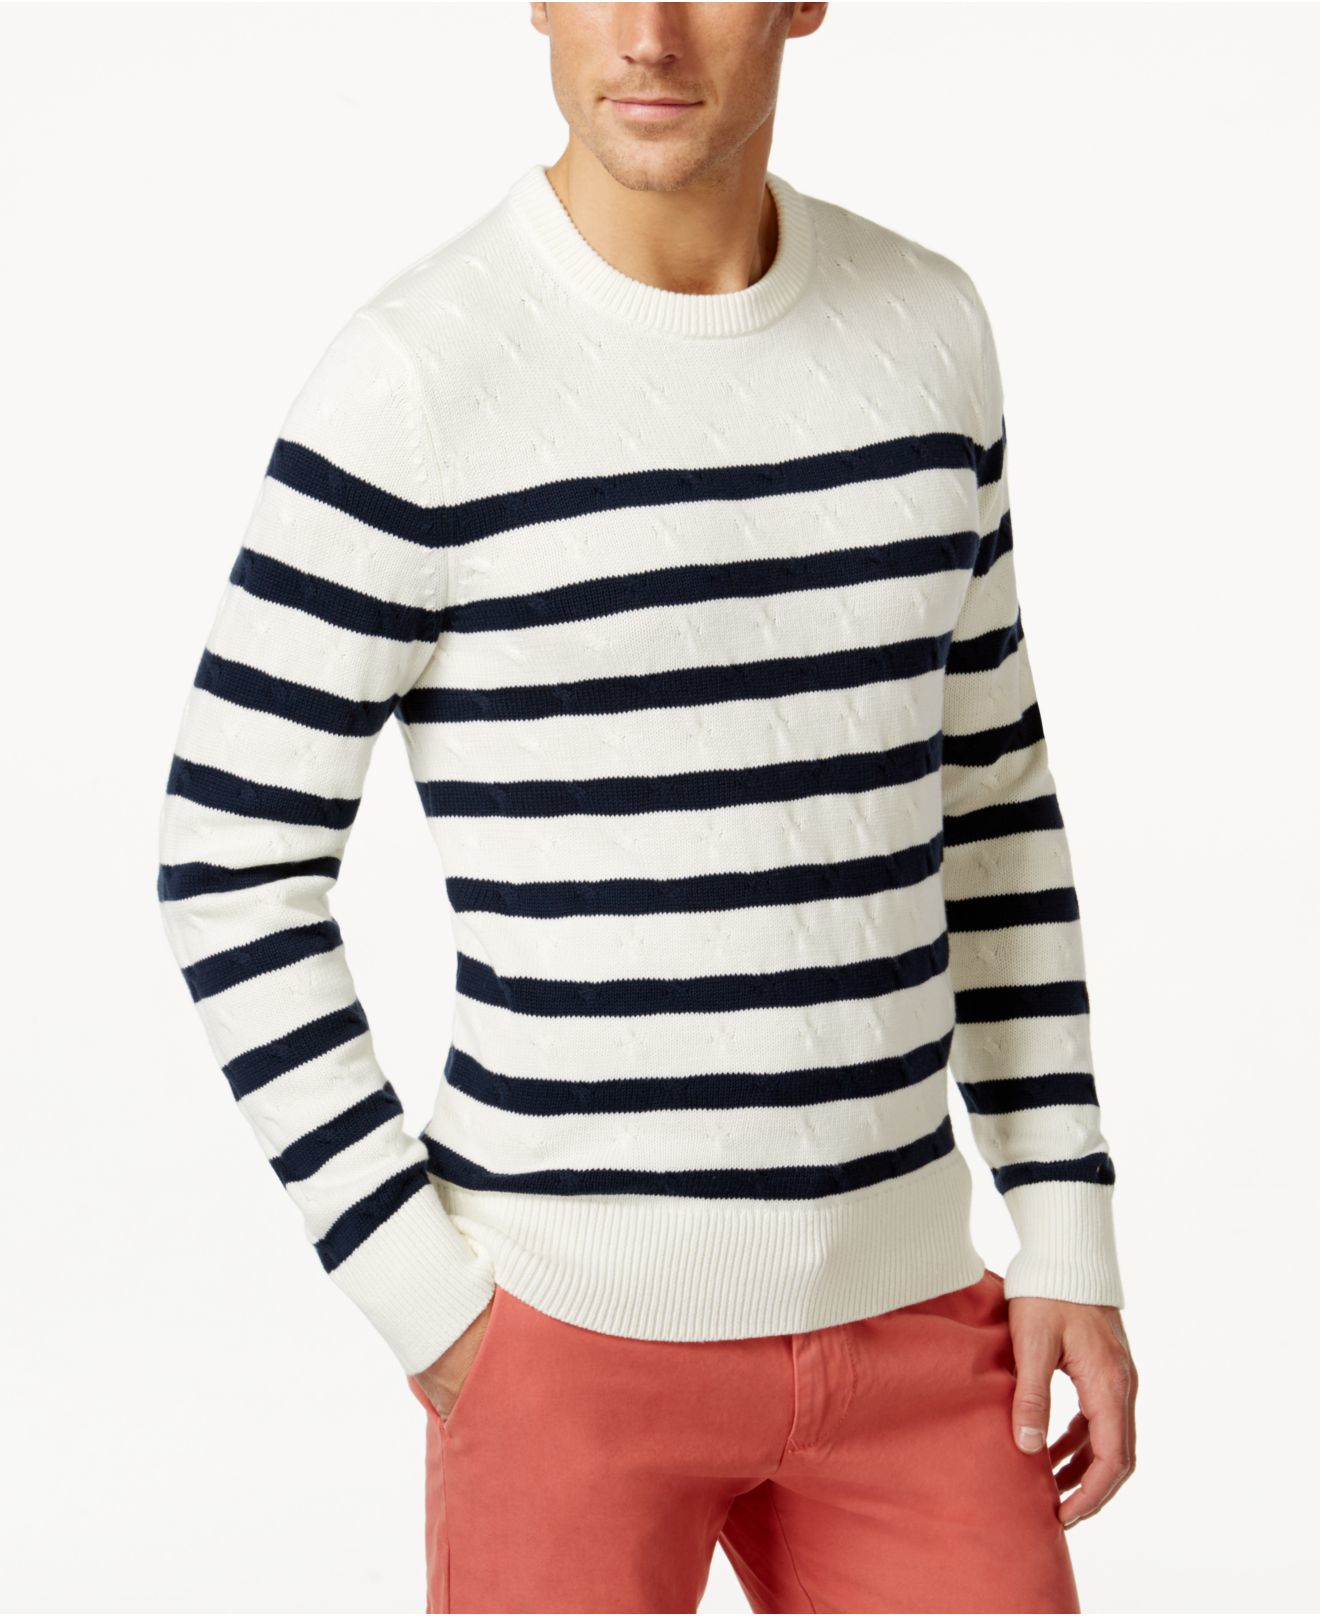 Enjoy free shipping and easy returns every day at Kohl's. Find great deals on Mens IZOD Sweaters at Kohl's today!